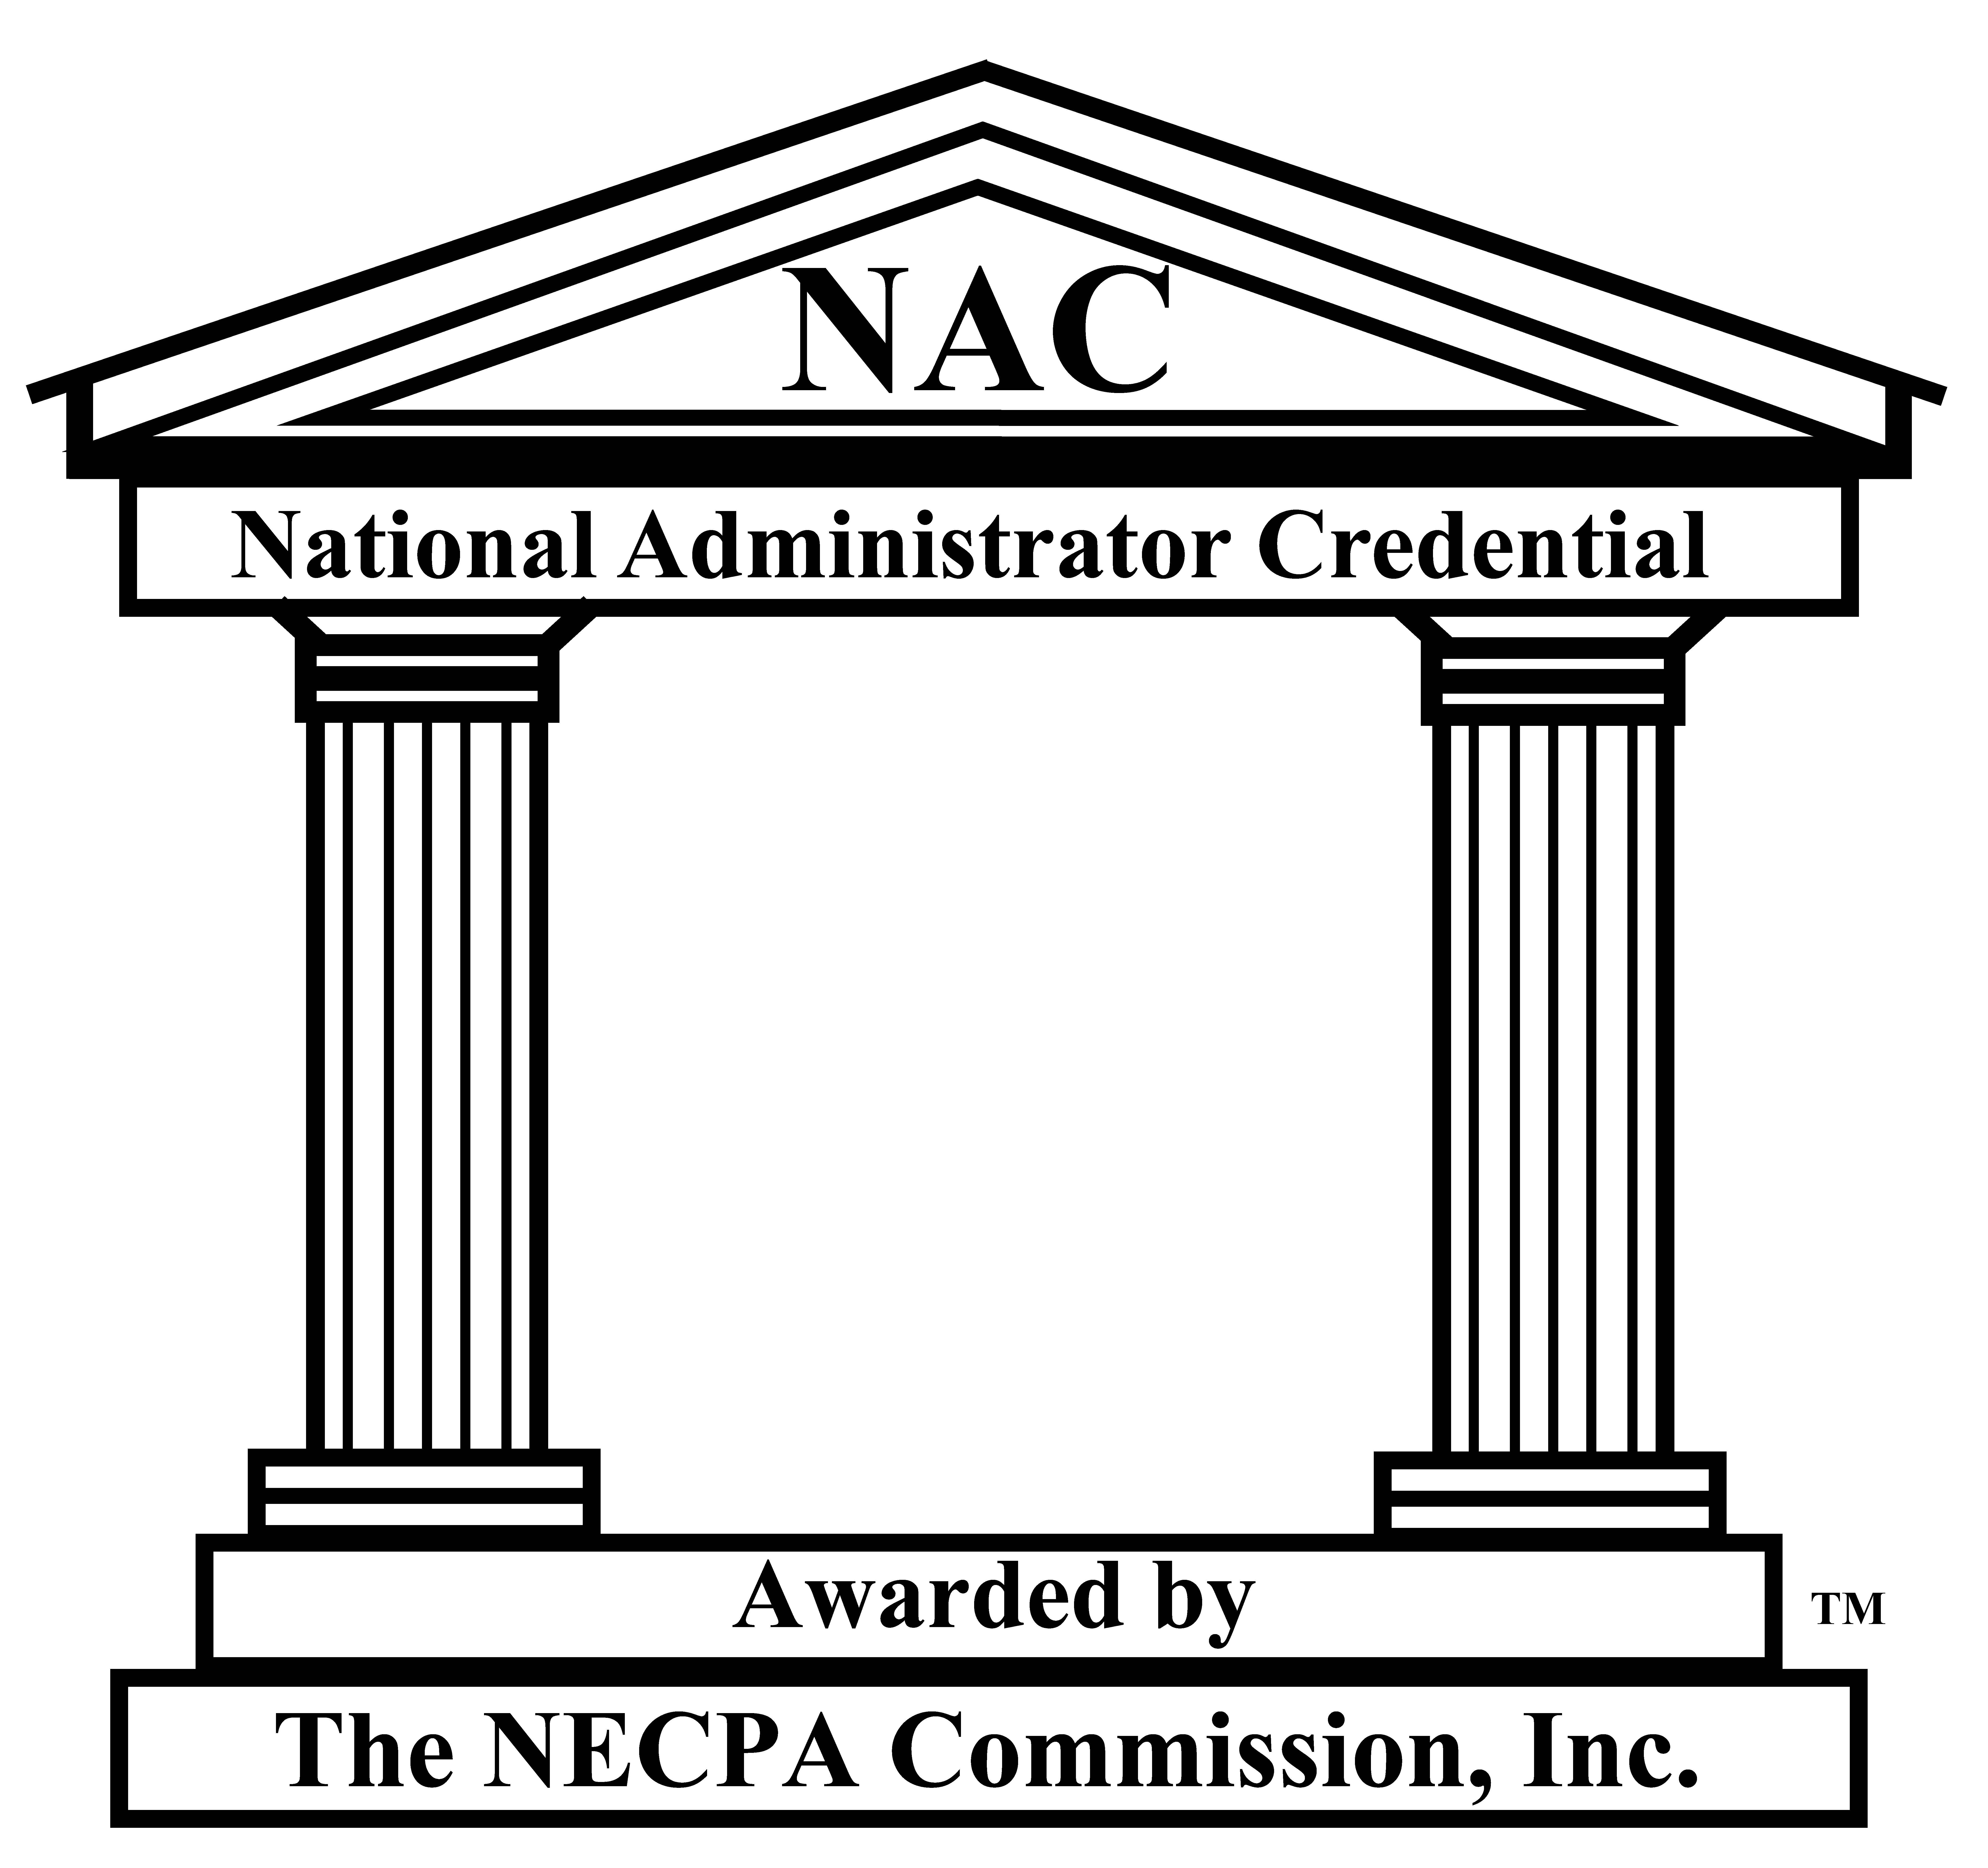 National Accreditation Commission (NAC)